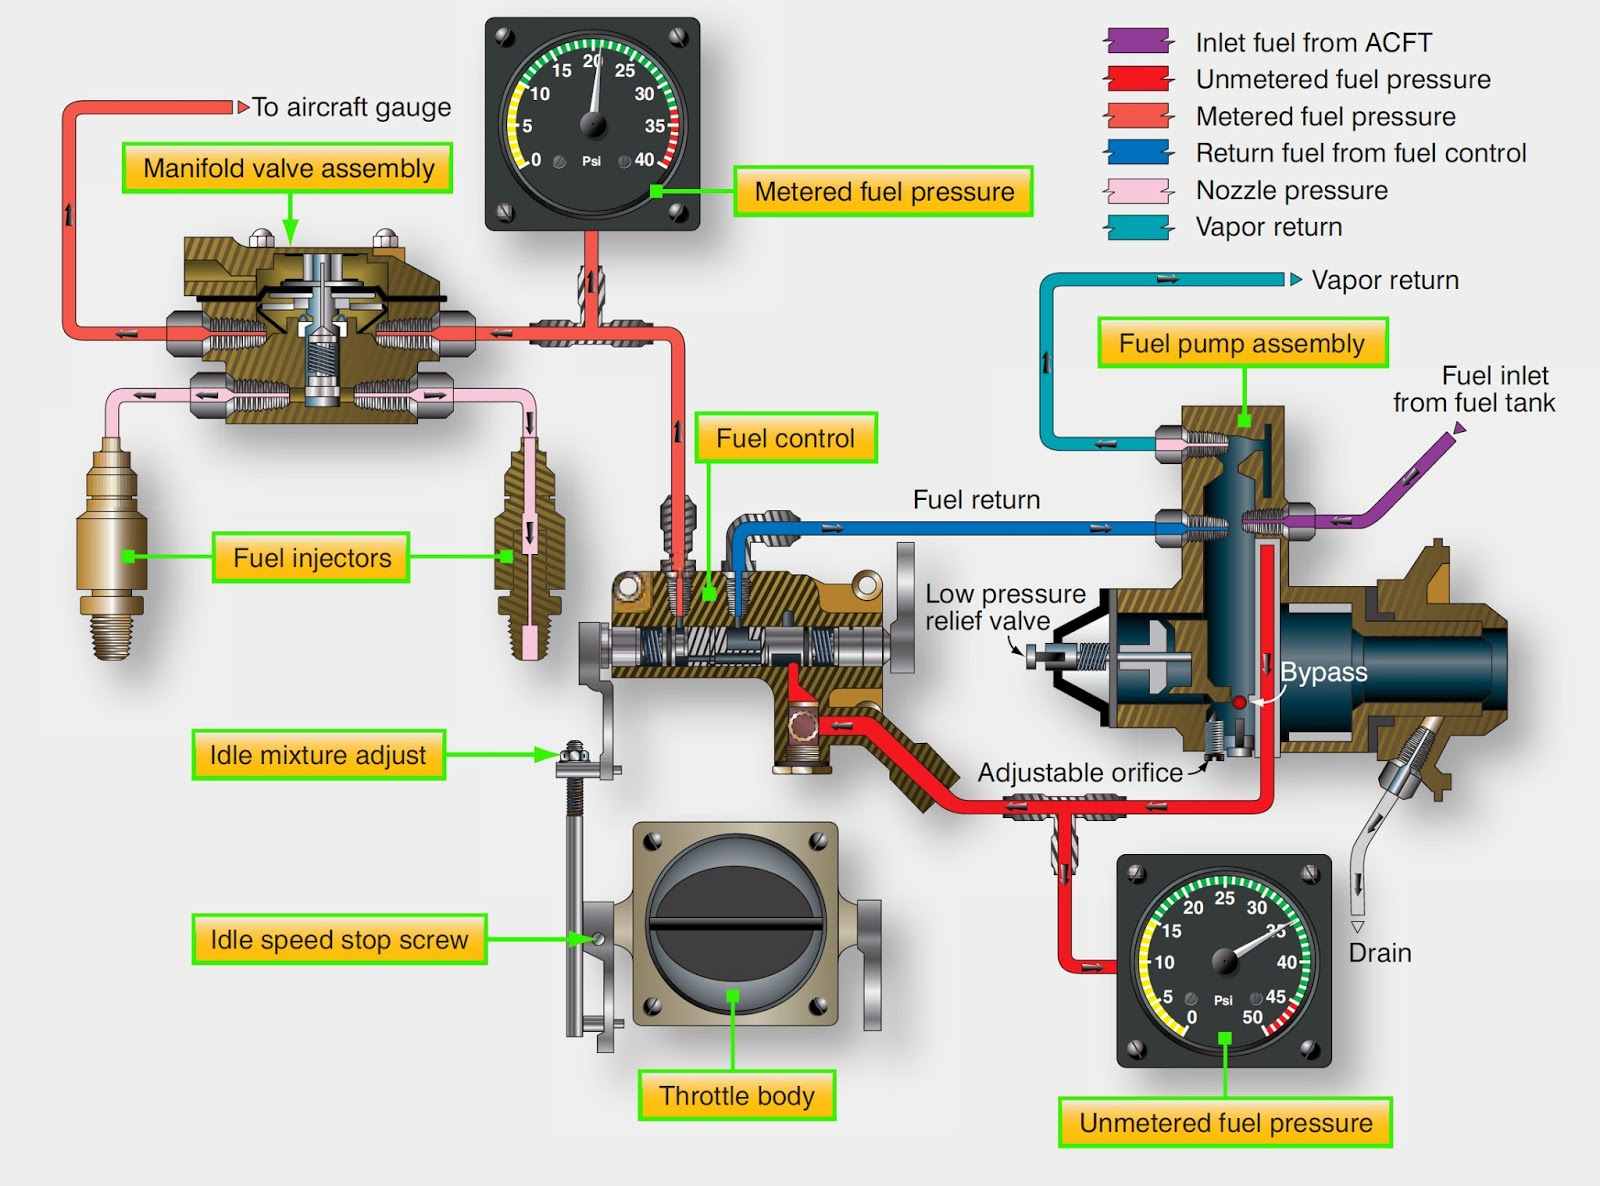 Continental%2BTCM%2BFuel Injection%2BSystem denso wiring harness dog harness wiring diagram ~ odicis denso wiring harness at soozxer.org